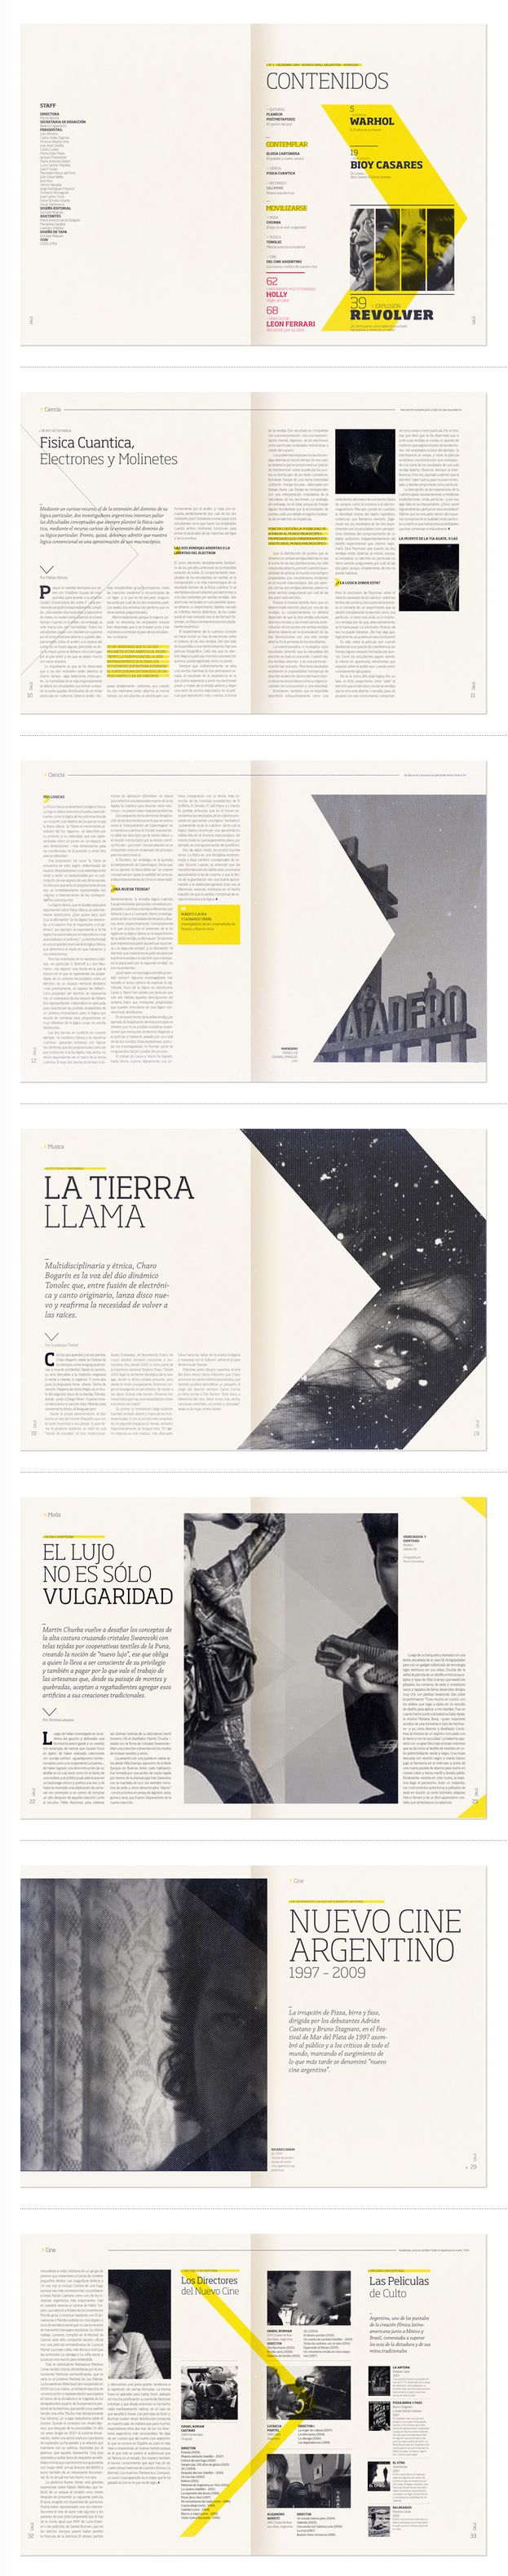 diseño editorial de revistas